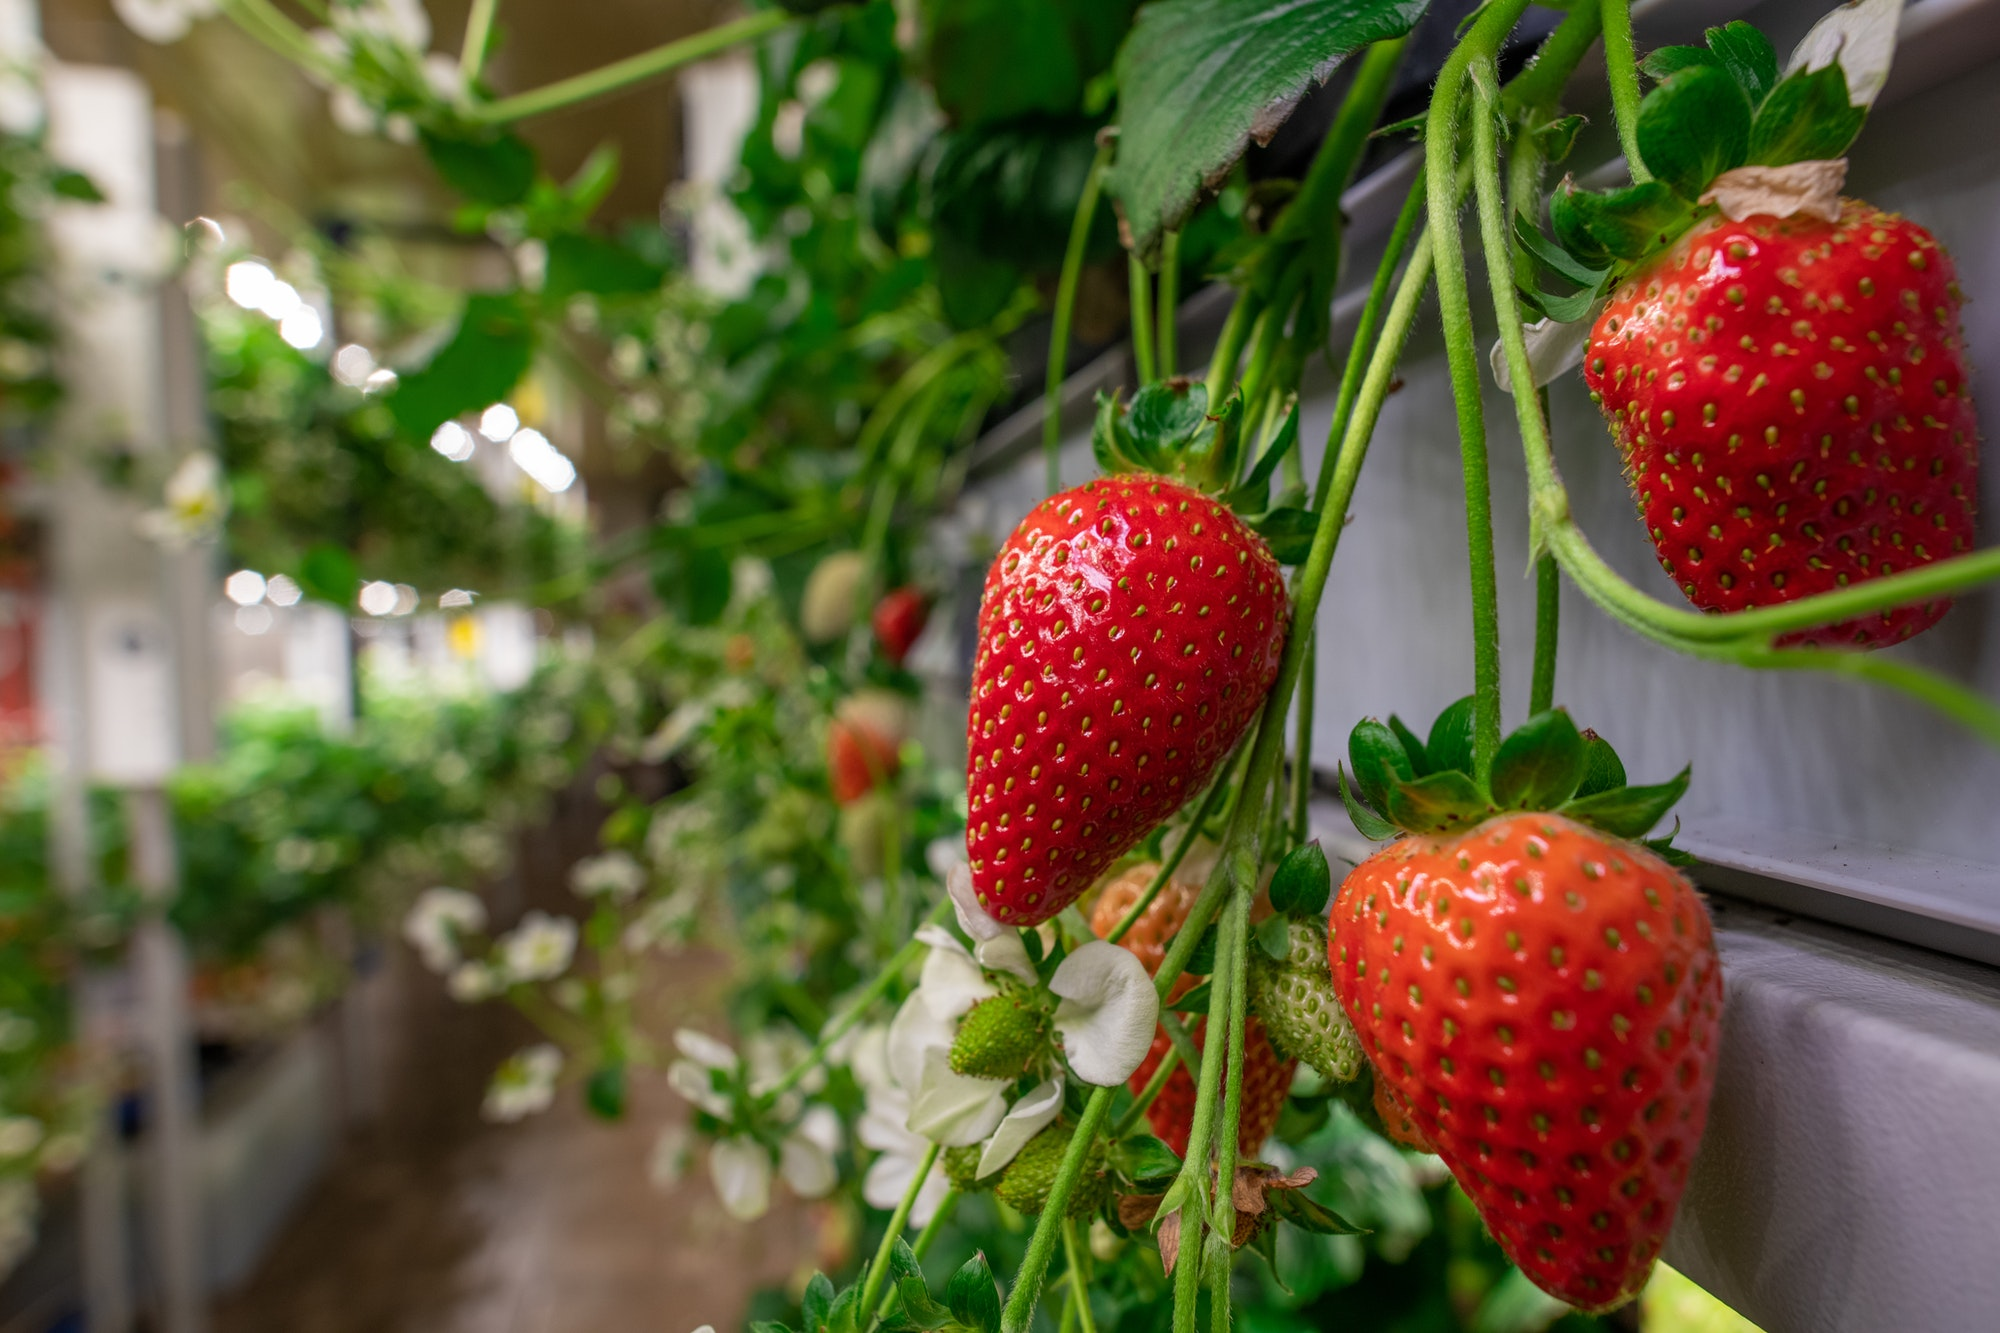 Indoor Growers World - Growing Strawberries Indoors or on a Vertical Farm Takes Lots of Light